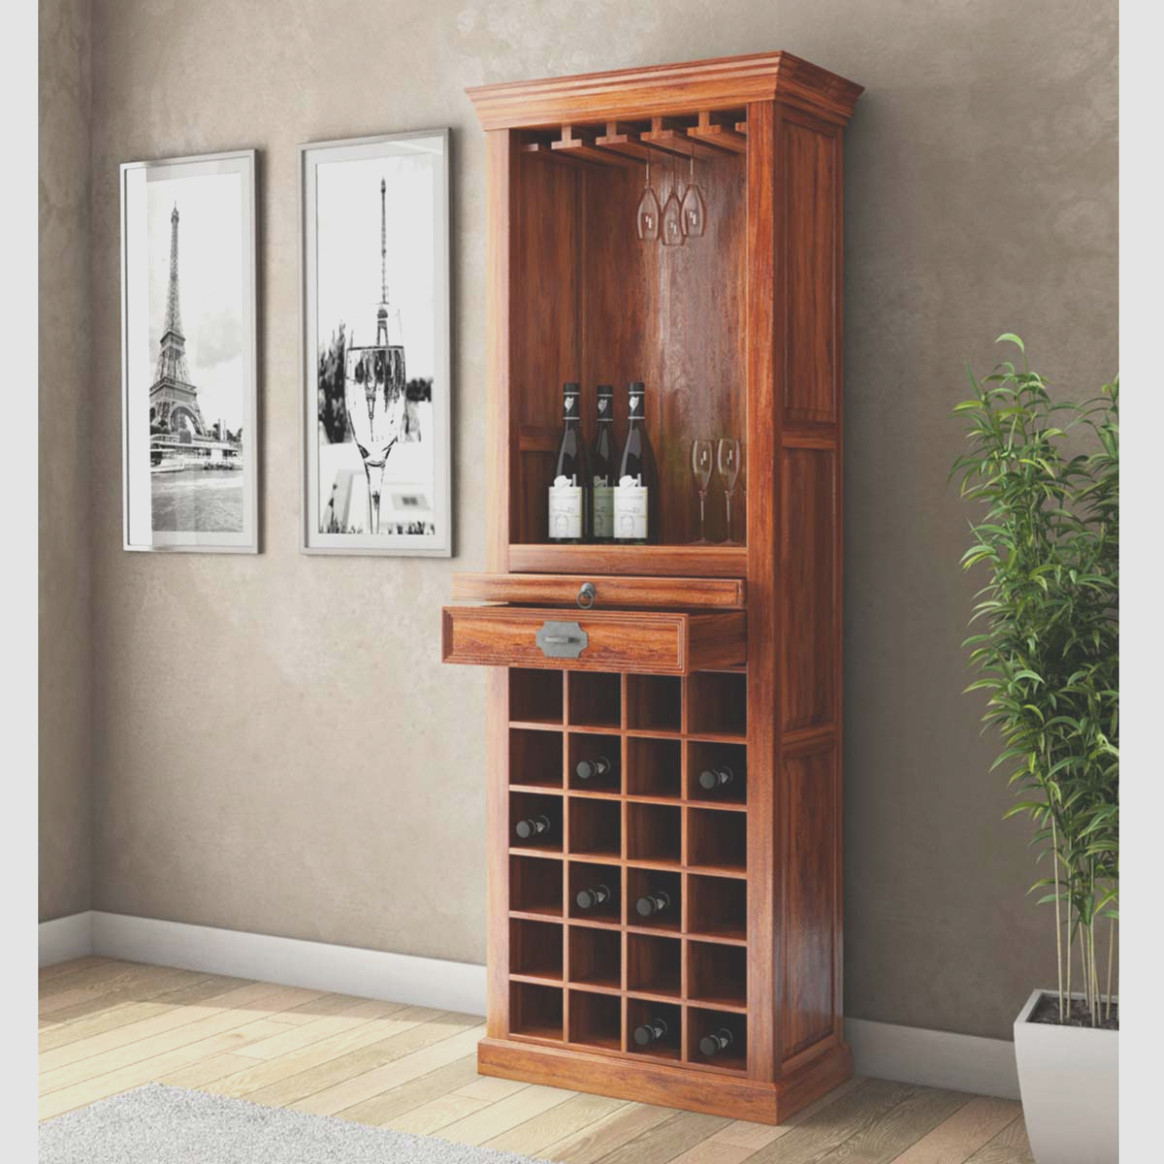 Tall Narrow Bar Cabinet